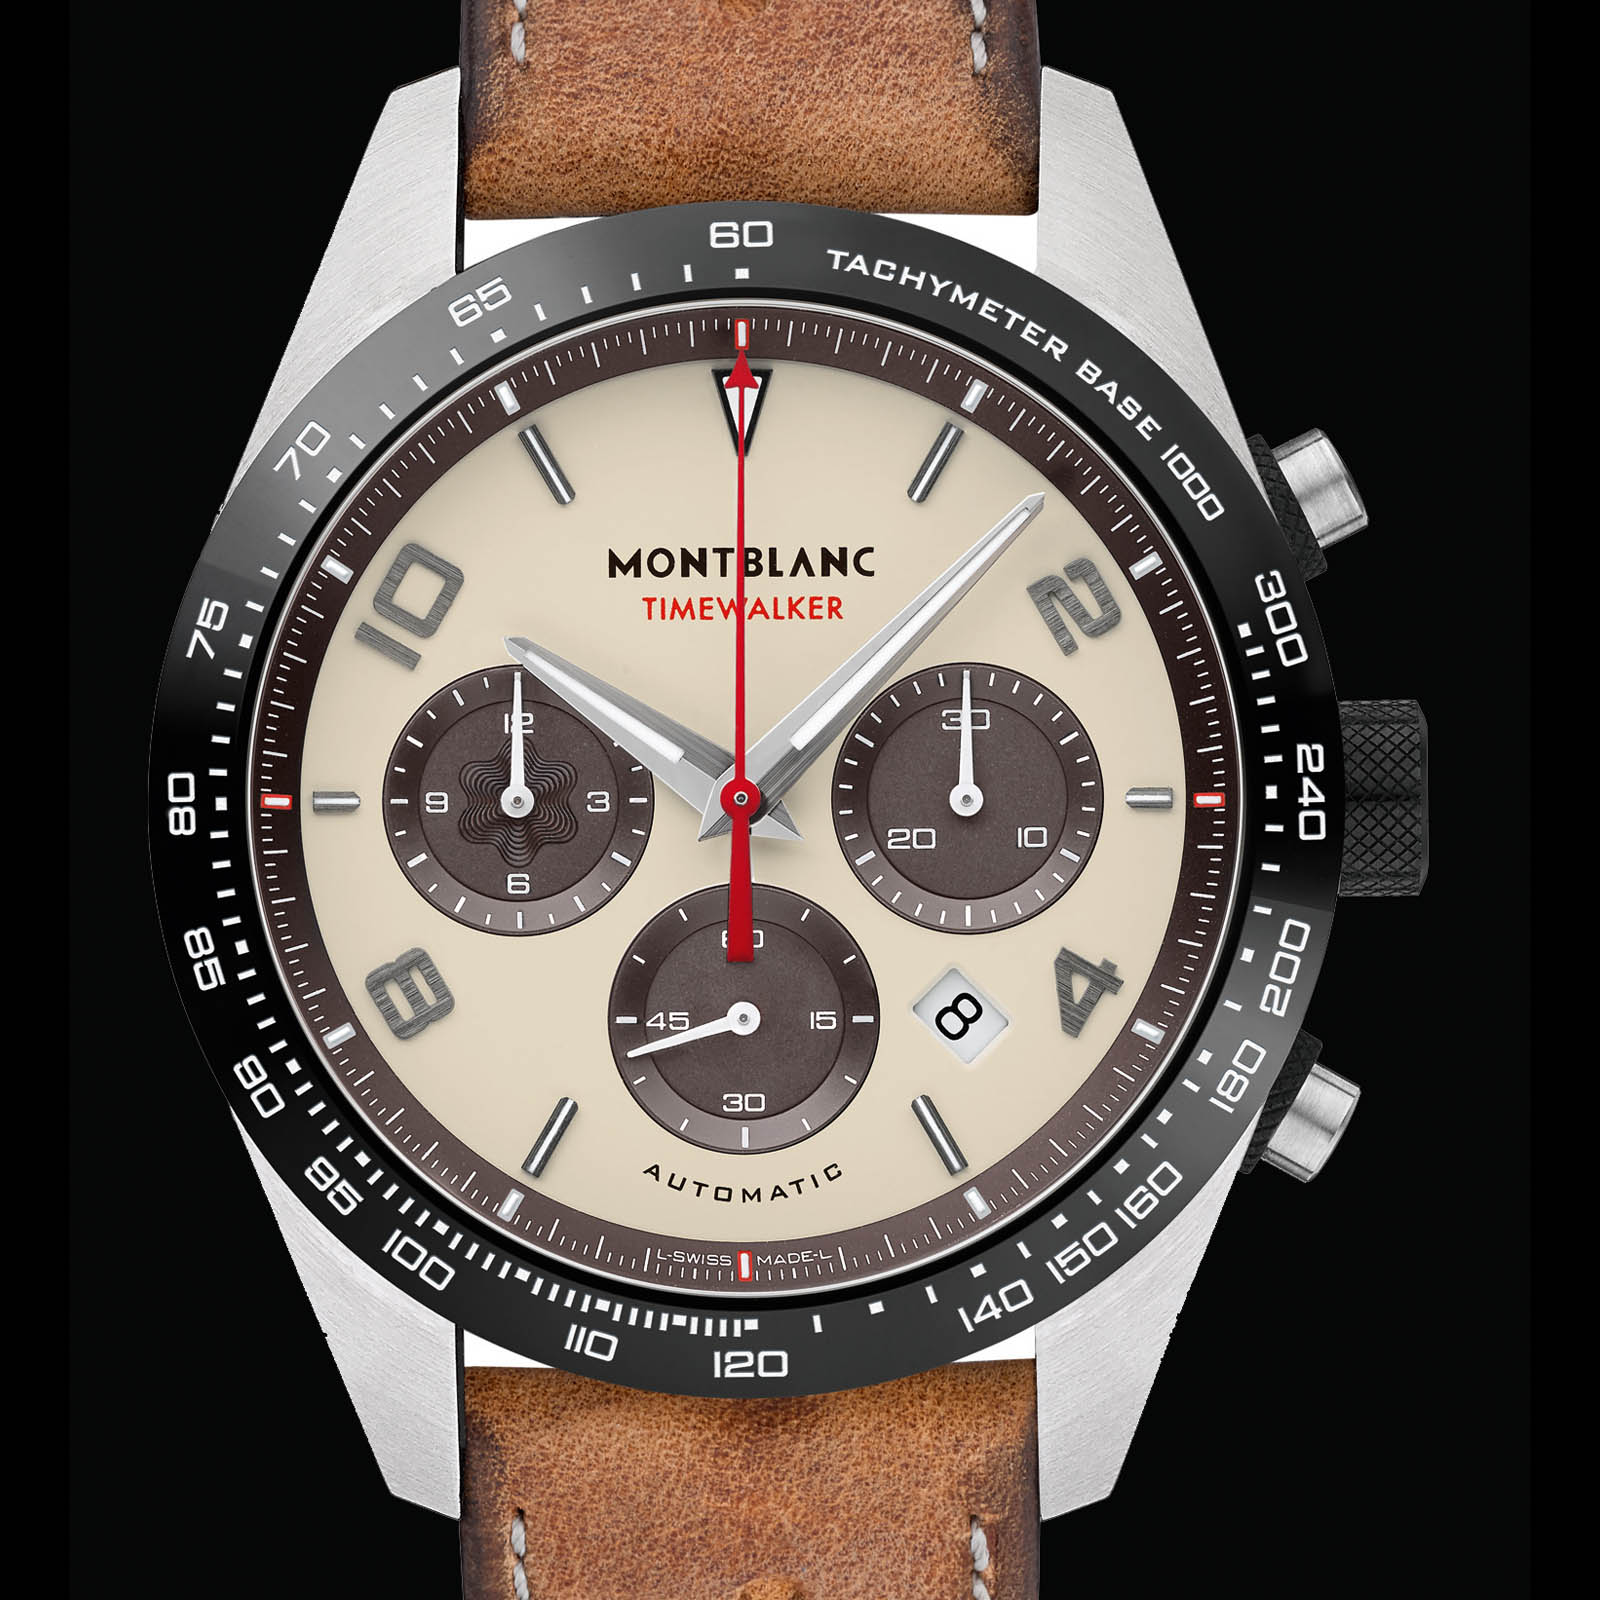 Montblanc TimeWalker Manufacture Chronograph Cappuccino edition